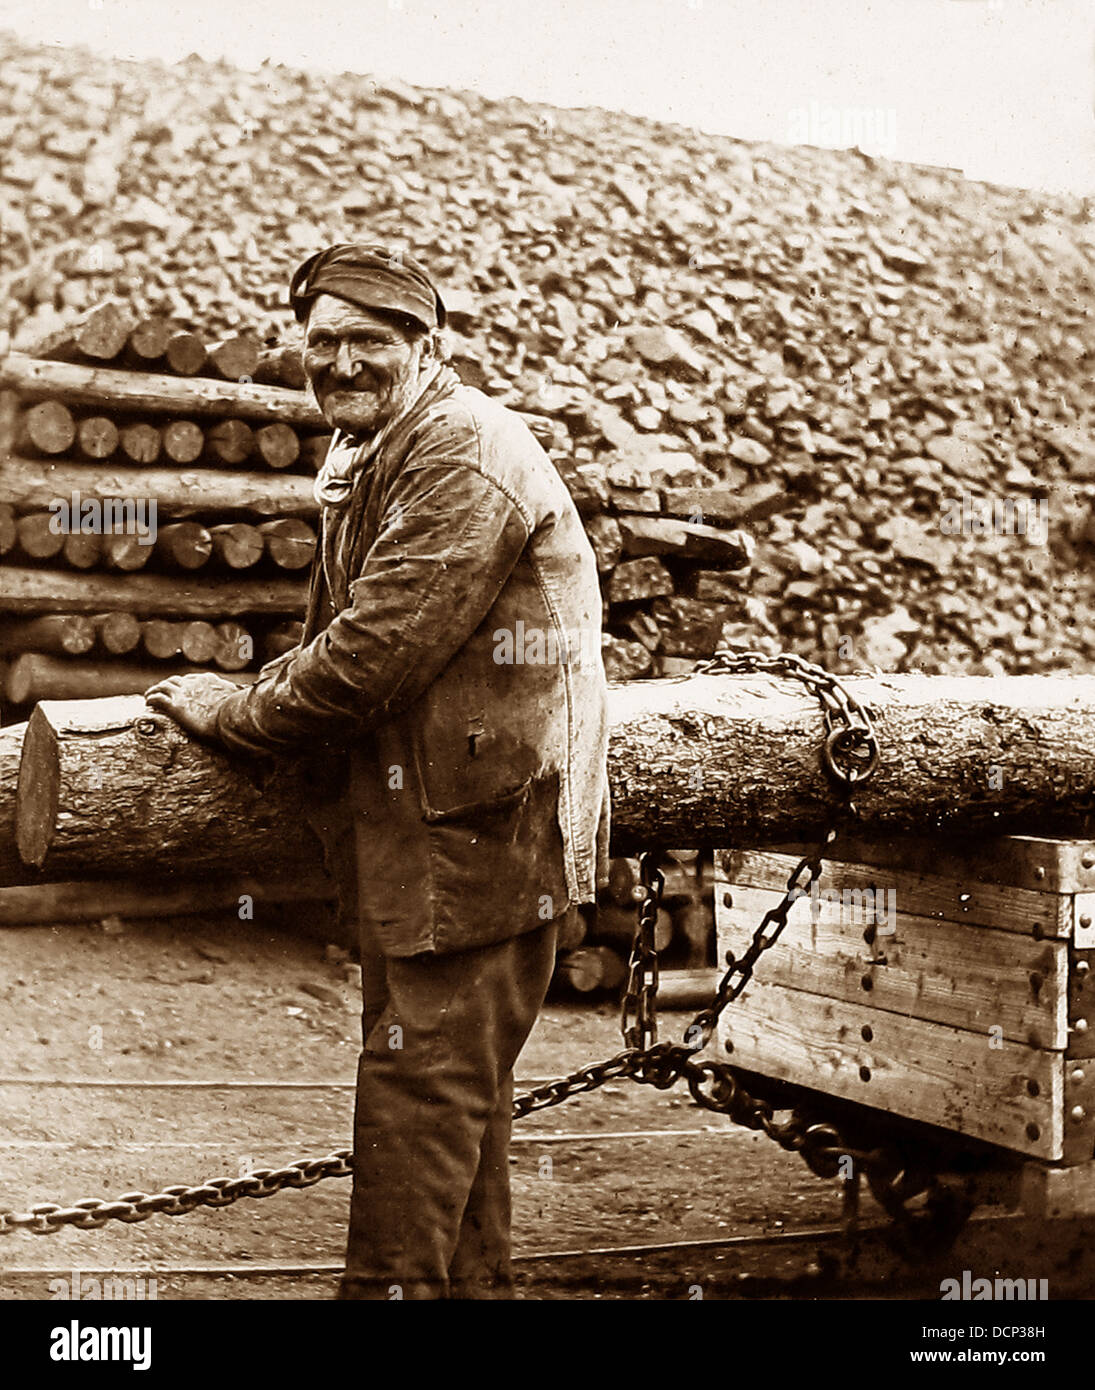 Taking a pit prop into the mine early 1900s - Stock Image